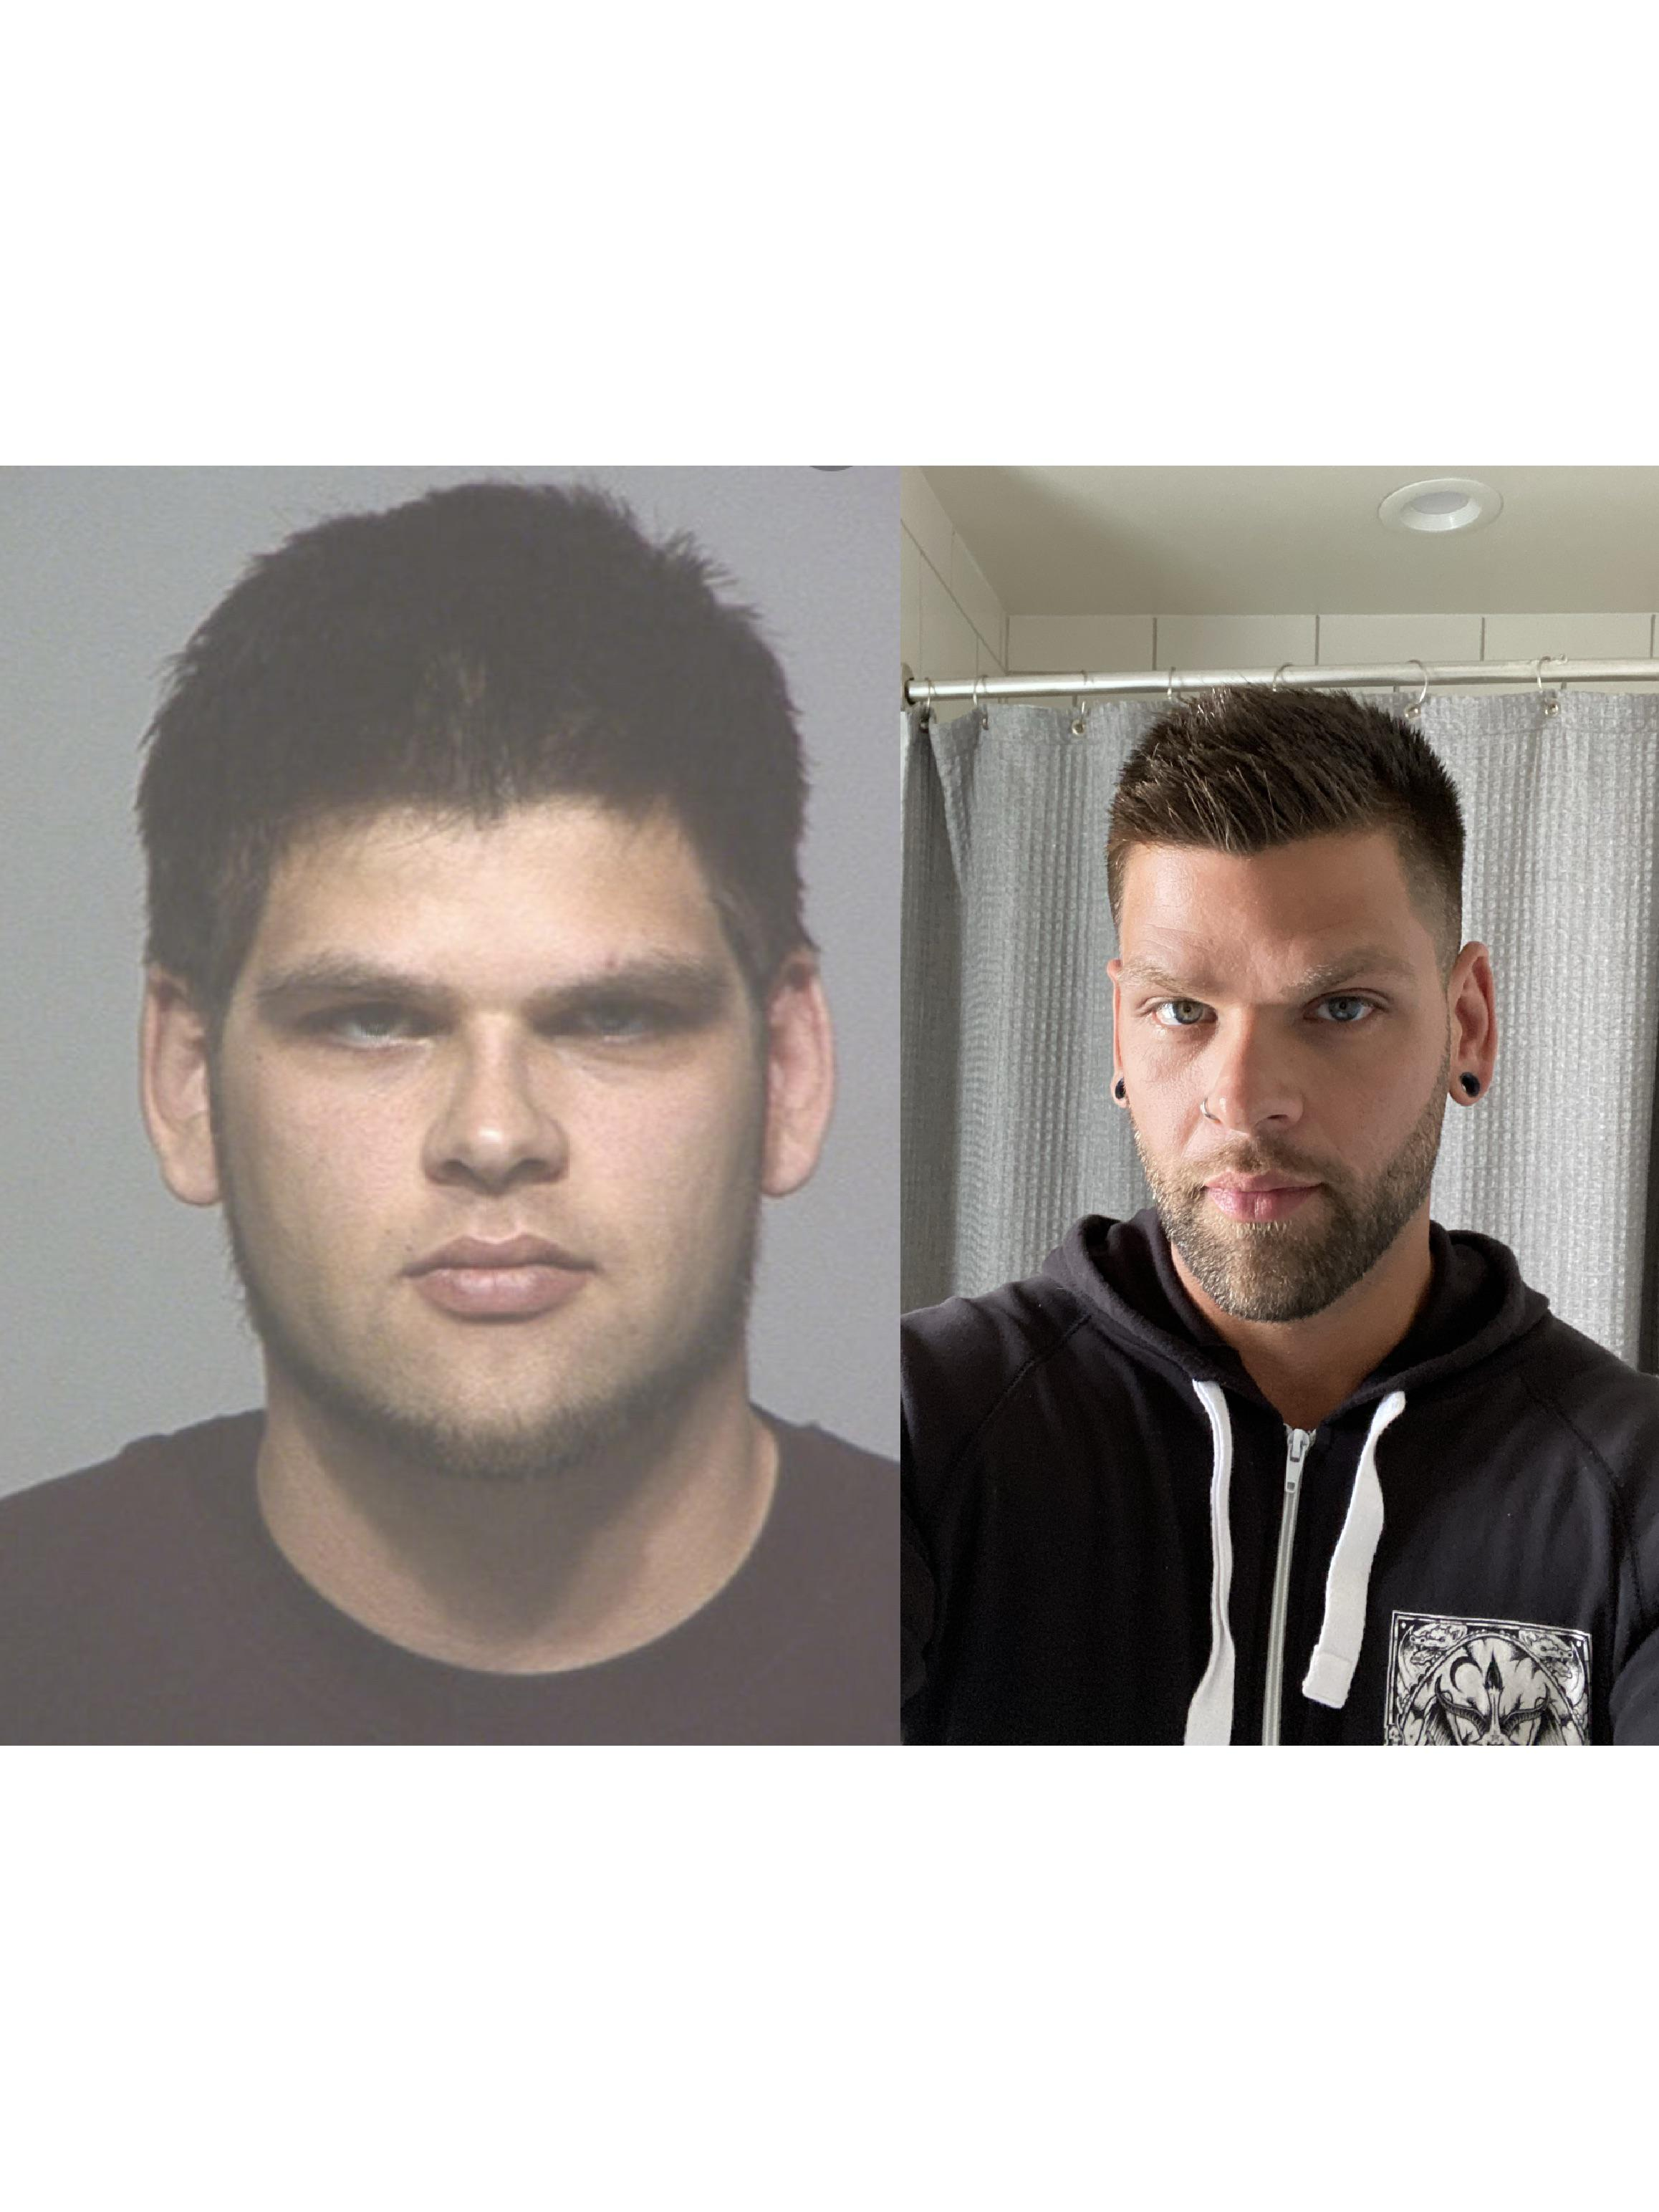 5 feet 9 Male 60 lbs Weight Loss Before and After 260 lbs to 200 lbs